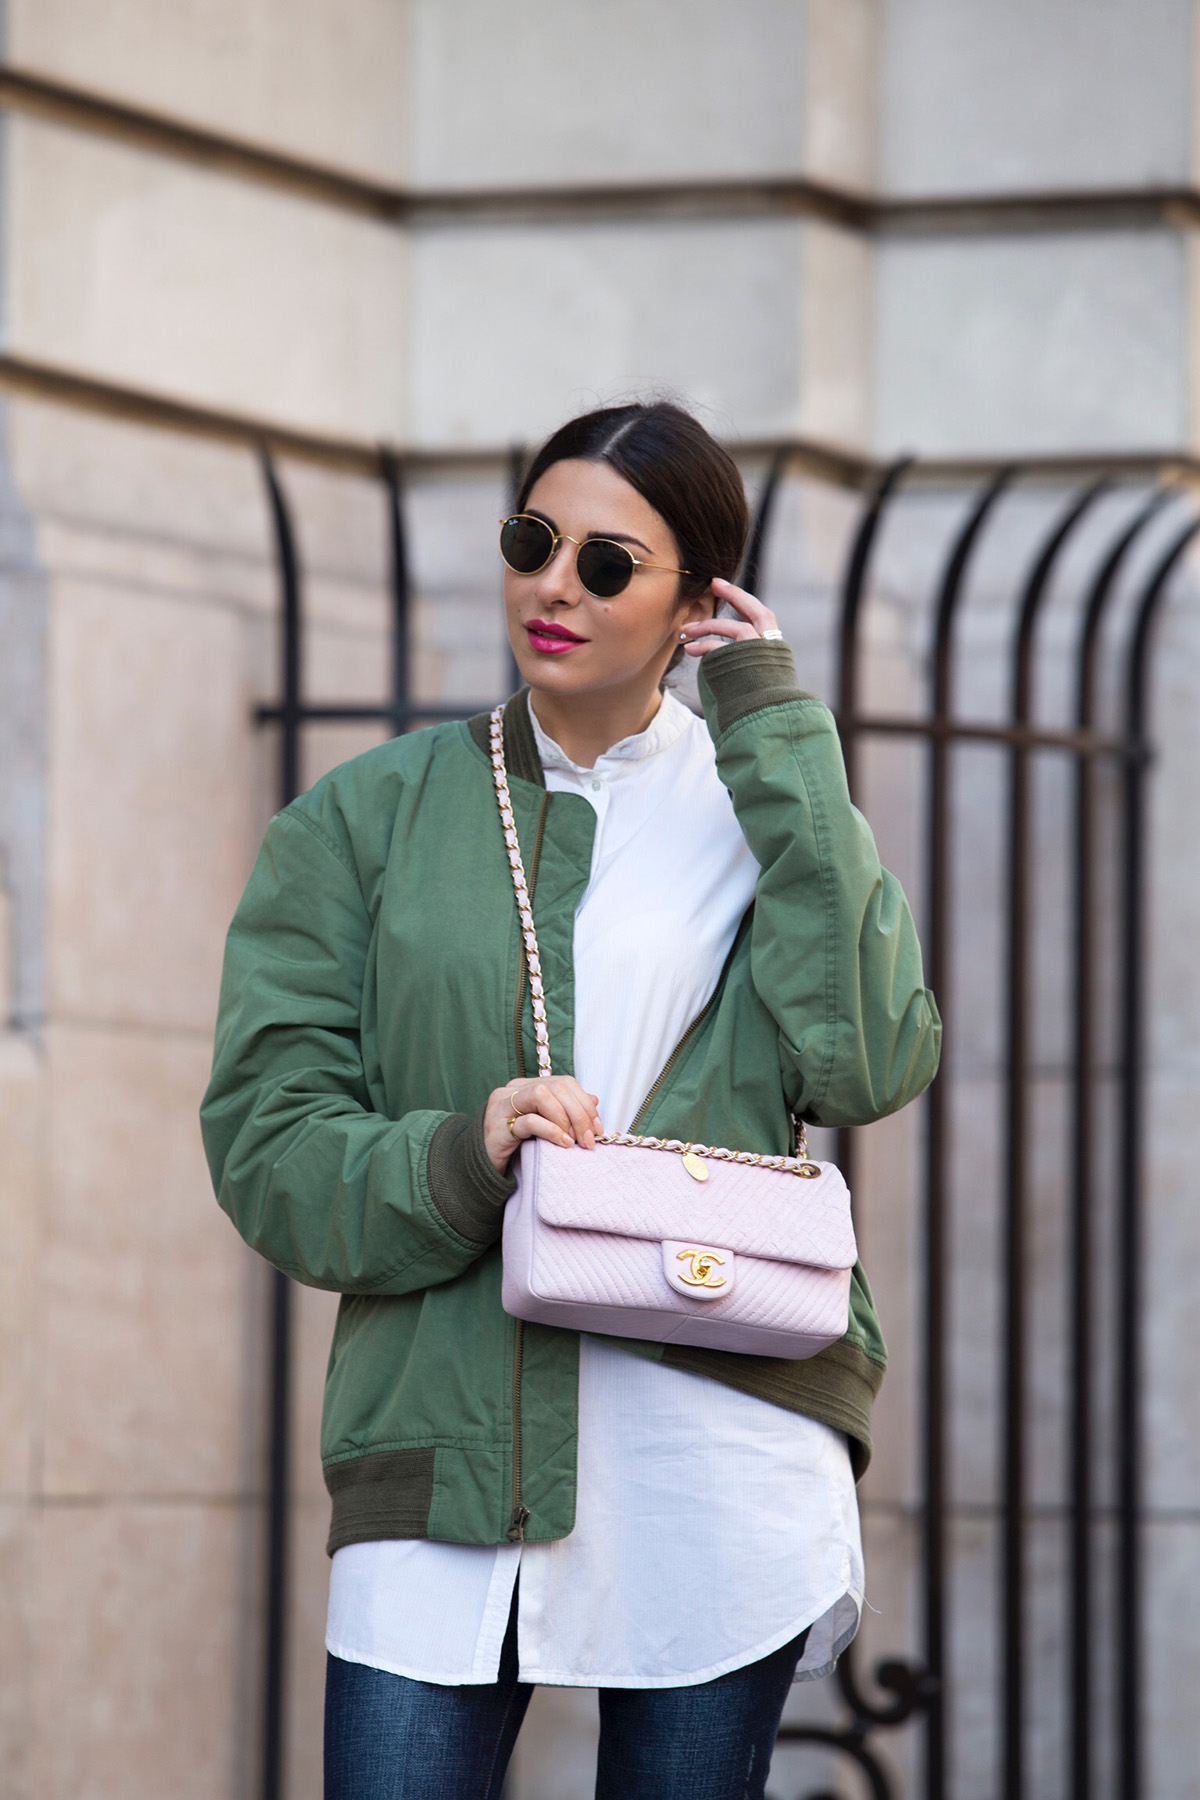 Stella Asteria - Fashion & Lifestyle Blogger wearing khaki bomber jacket and pink Chanel bag